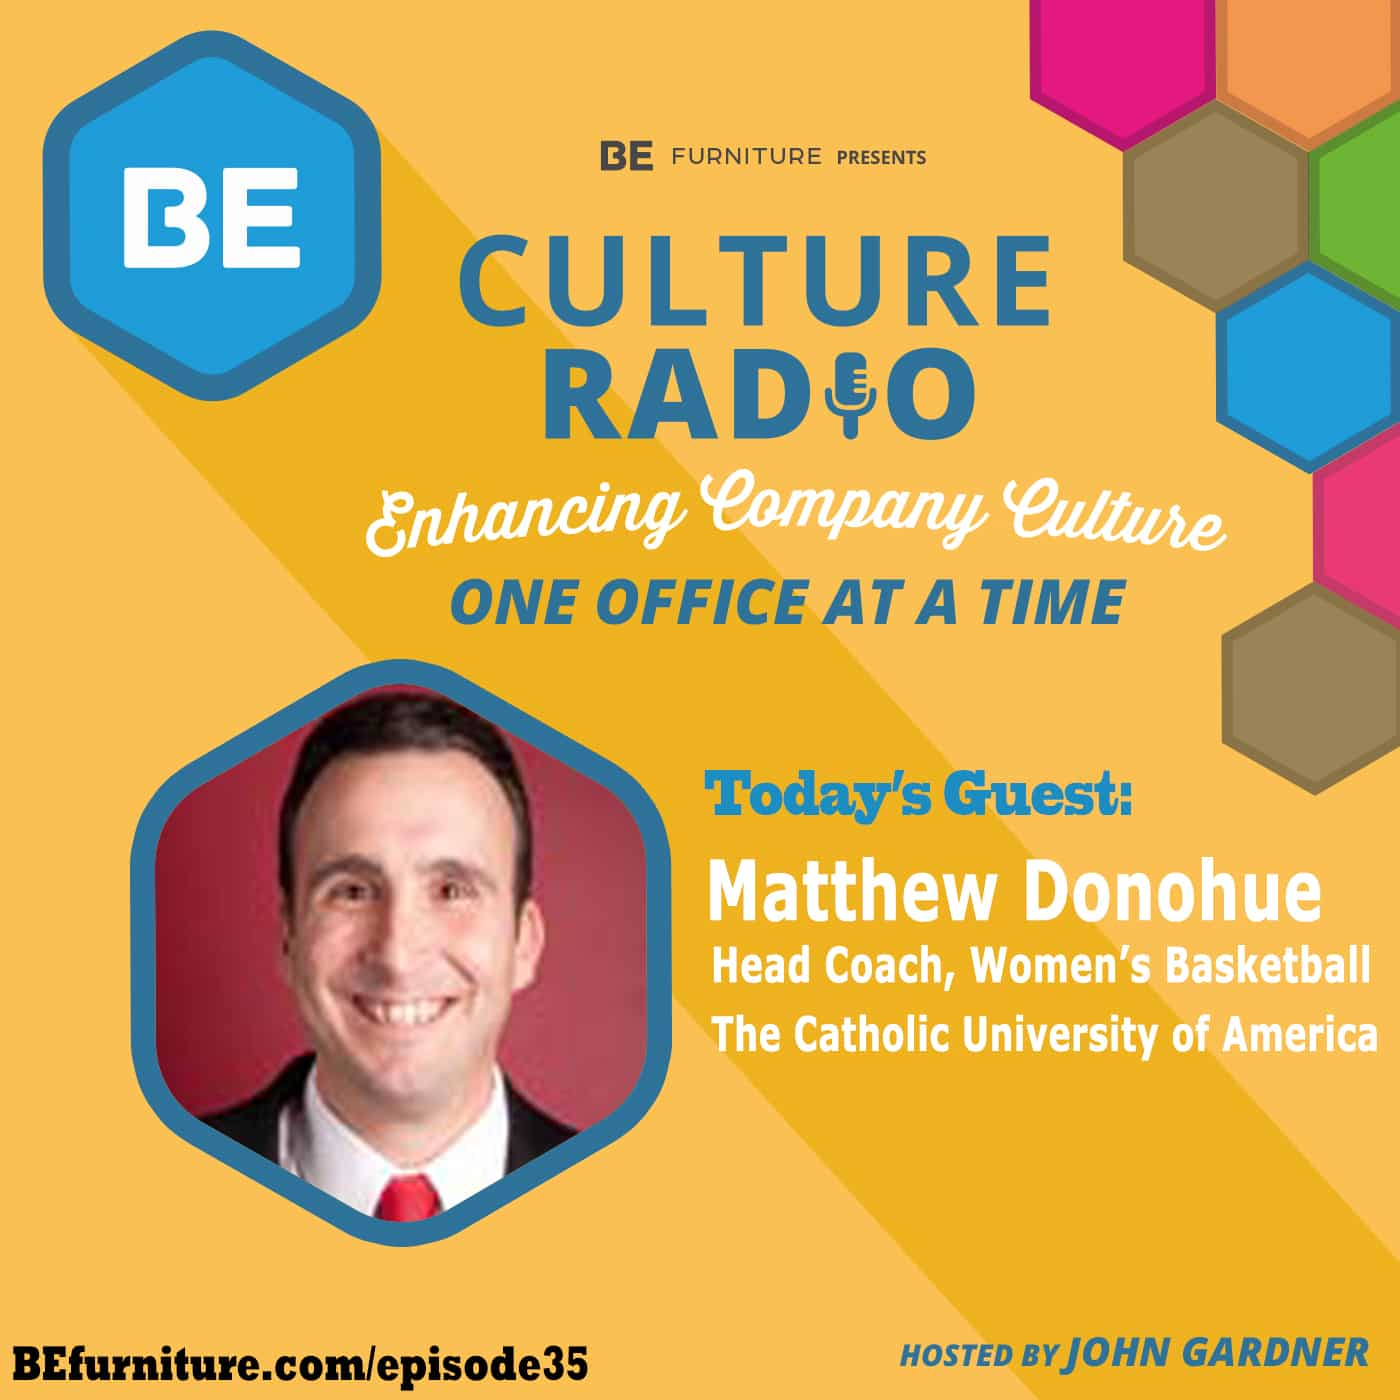 Matthew Donohue - Head Coach, Women's Basketball - The Catholic University of America